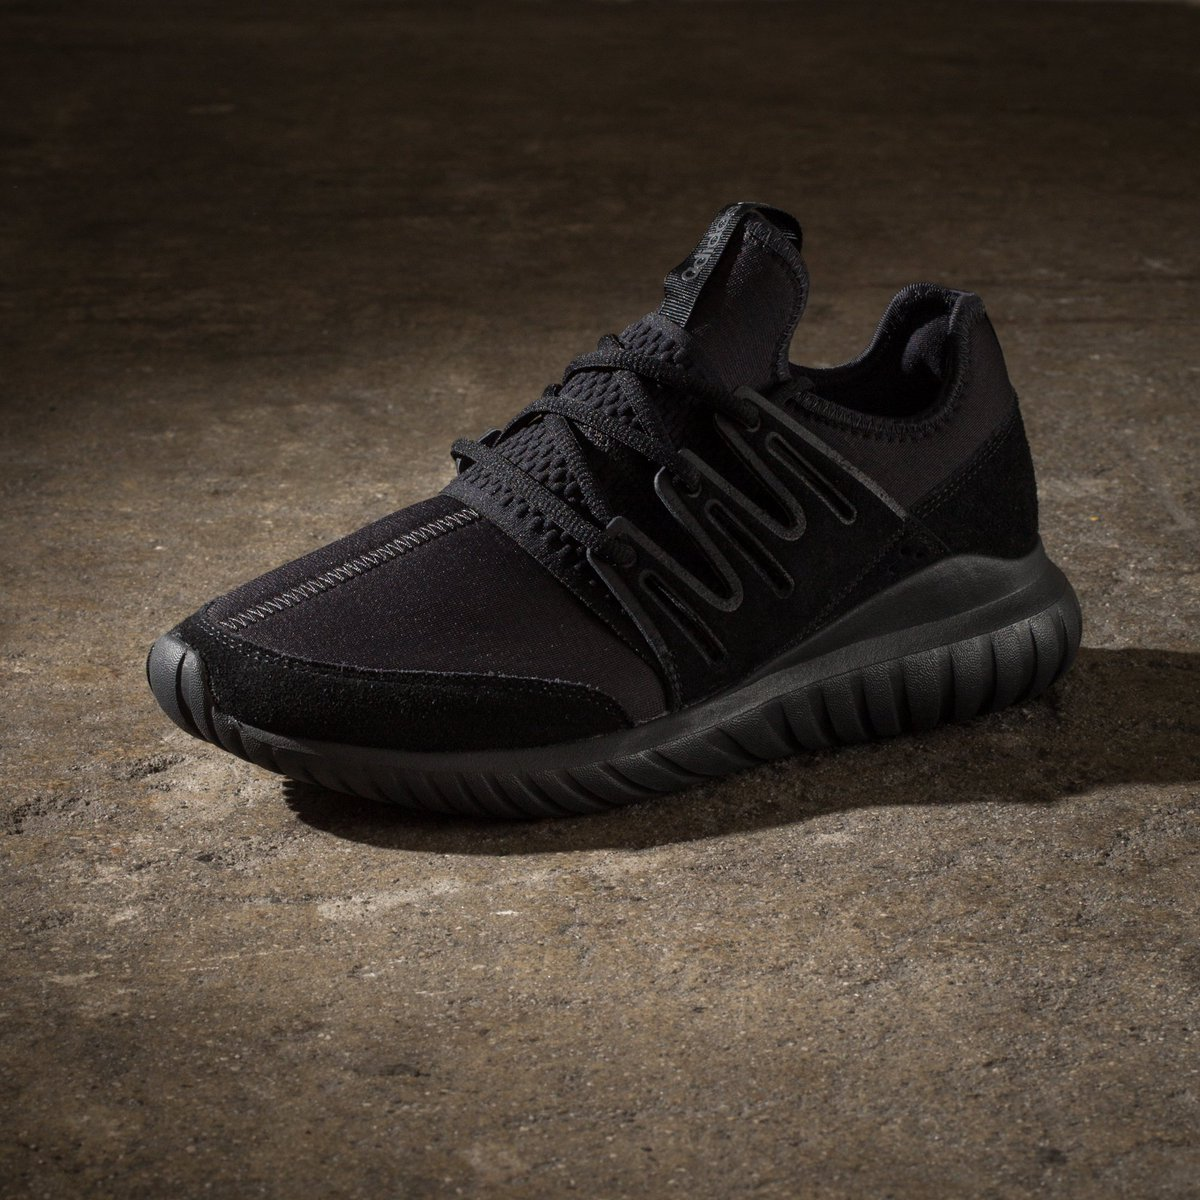 adidas Tubular Radial // Available now at Select Undefeated Chapter Stores and